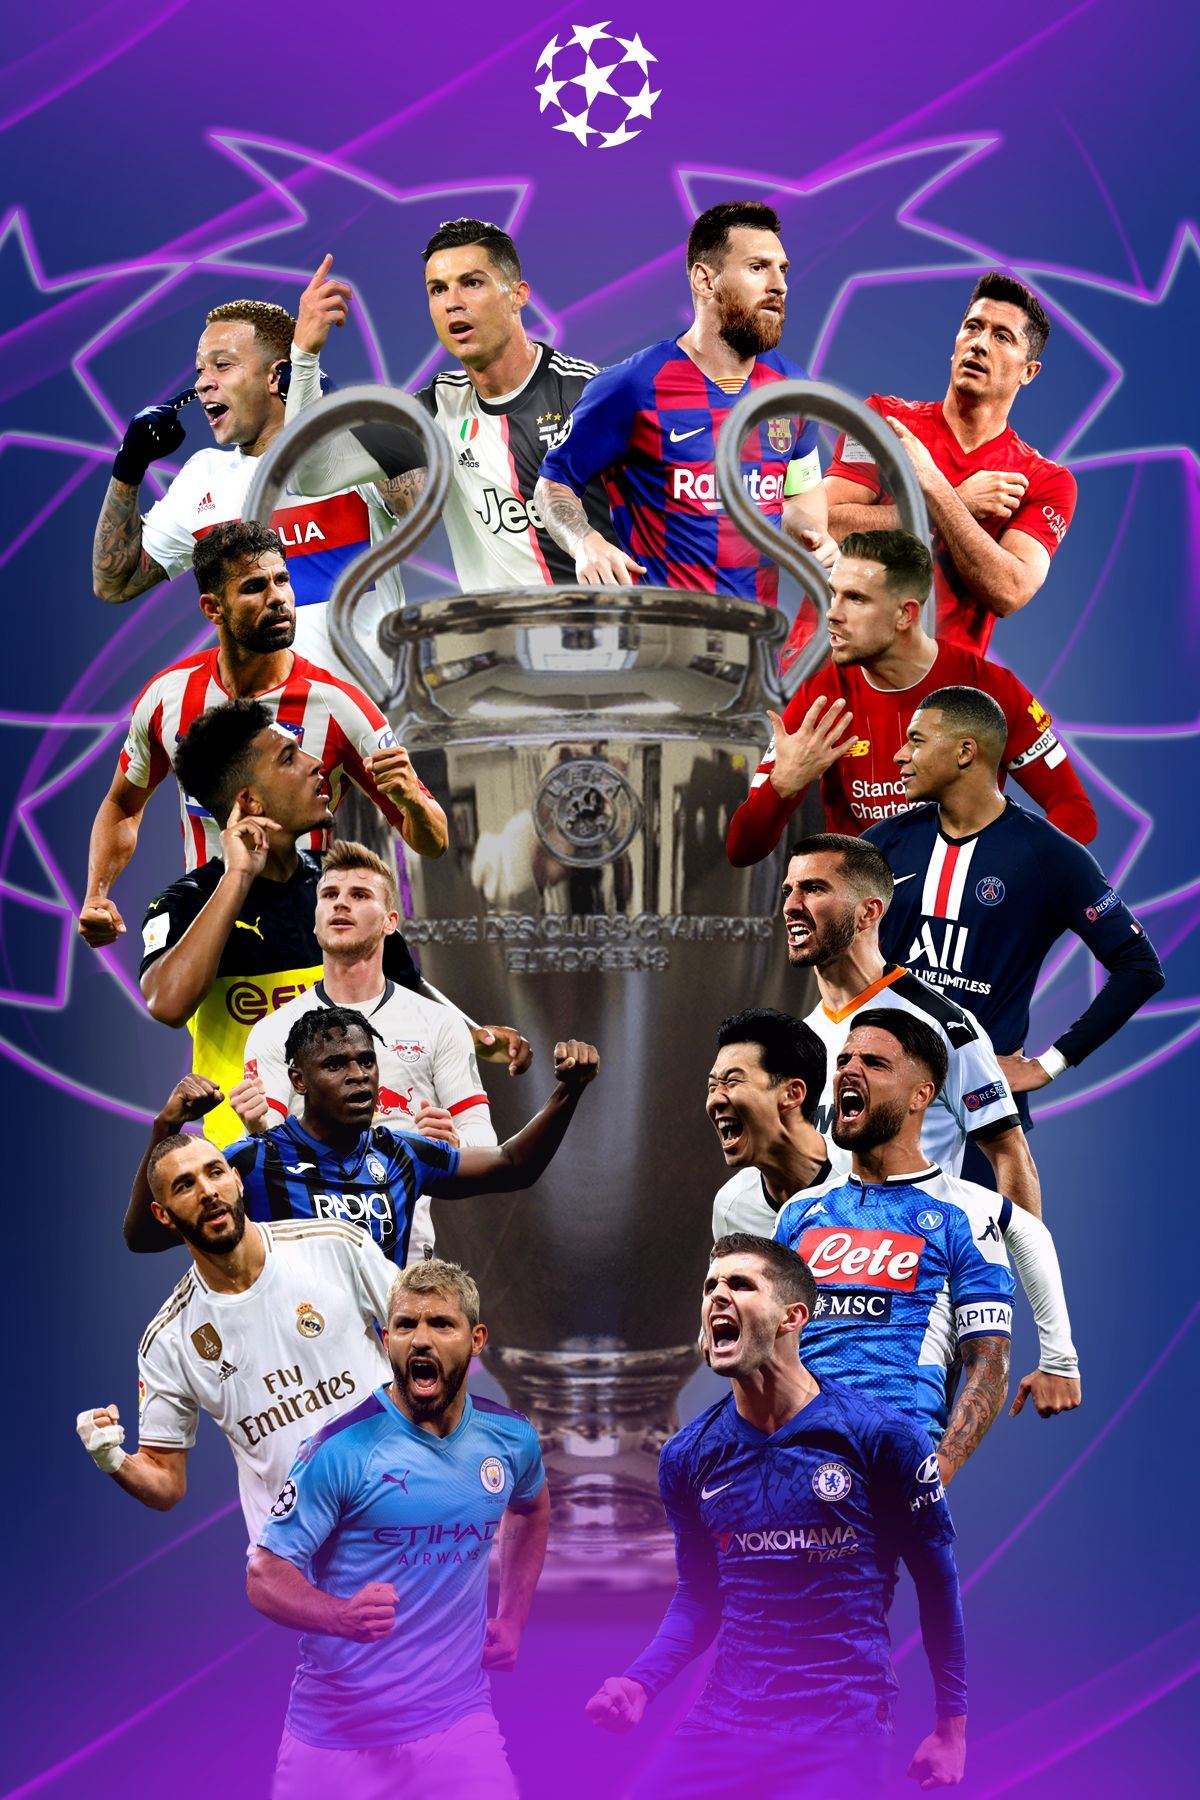 uefa champions league poster in 2020 champions league poster uefa champions league champions league uefa champions league poster in 2020